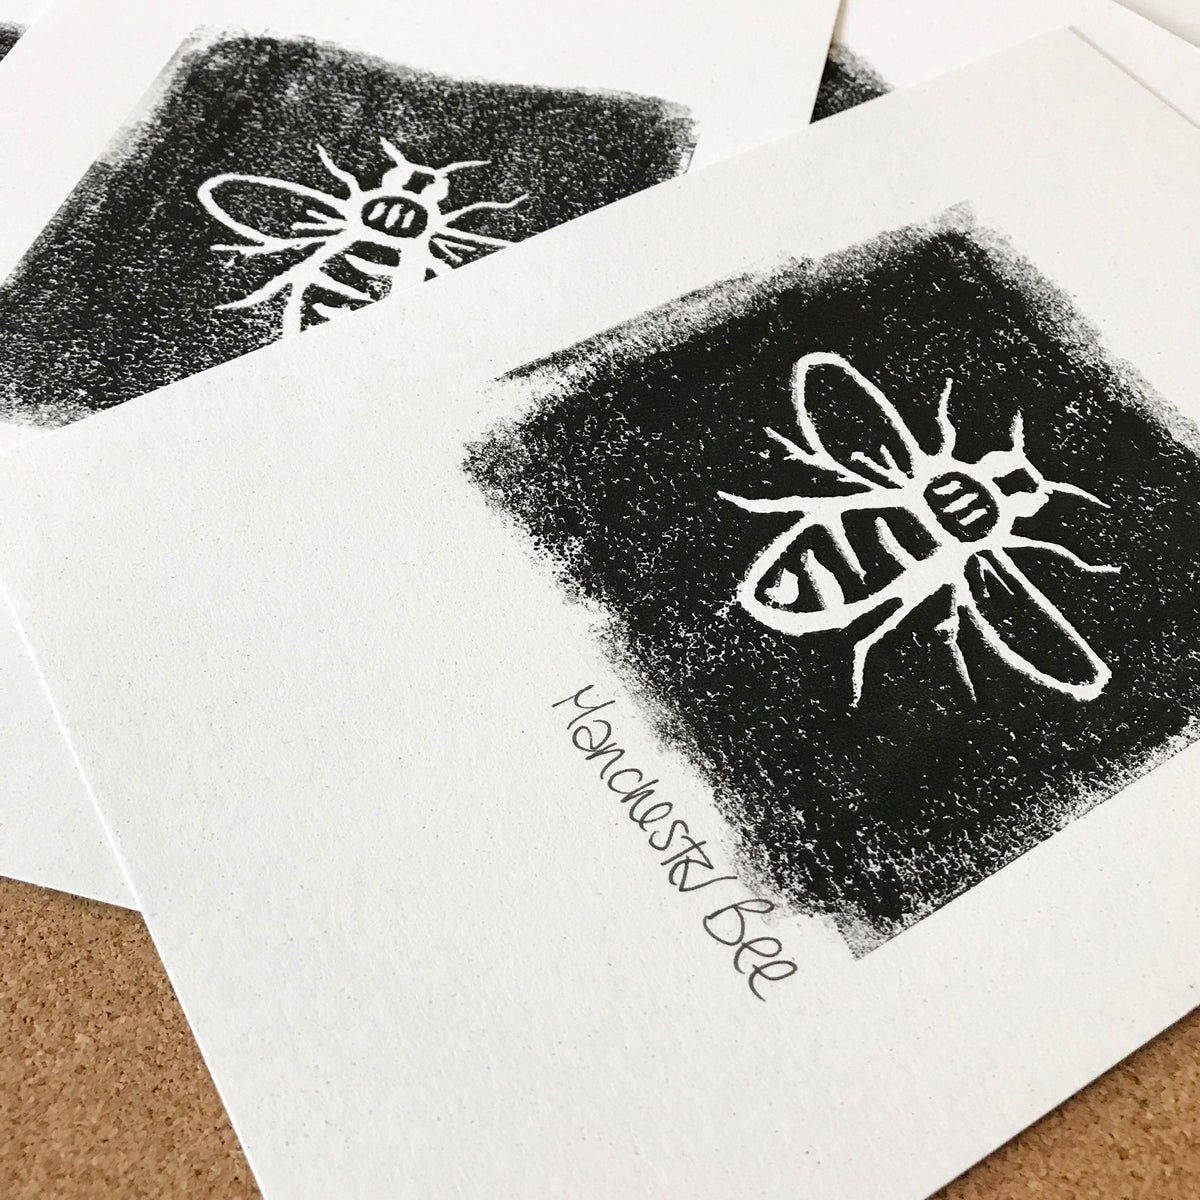 Image of Manchester Bee Lino Cut Print by ManBeeCo